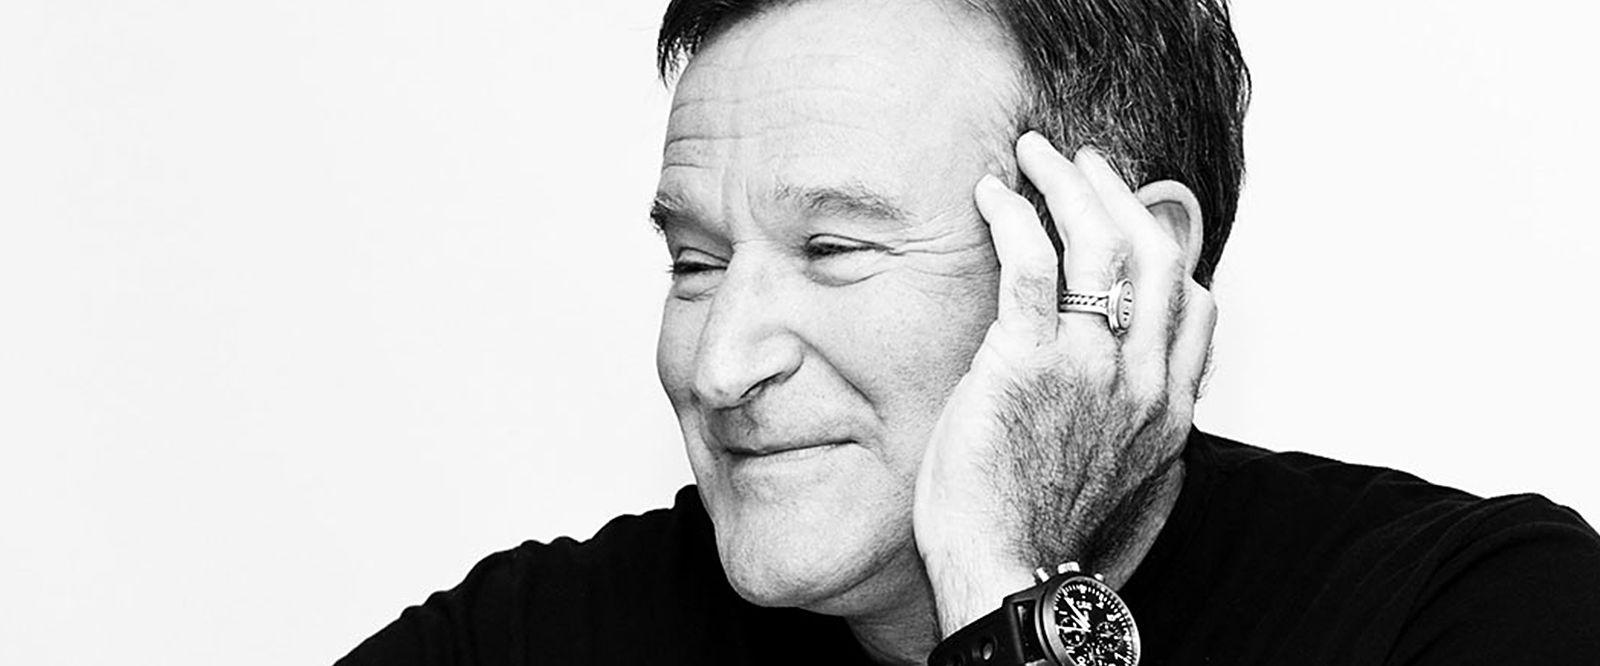 robin williams wallpapers - wallpaper cave